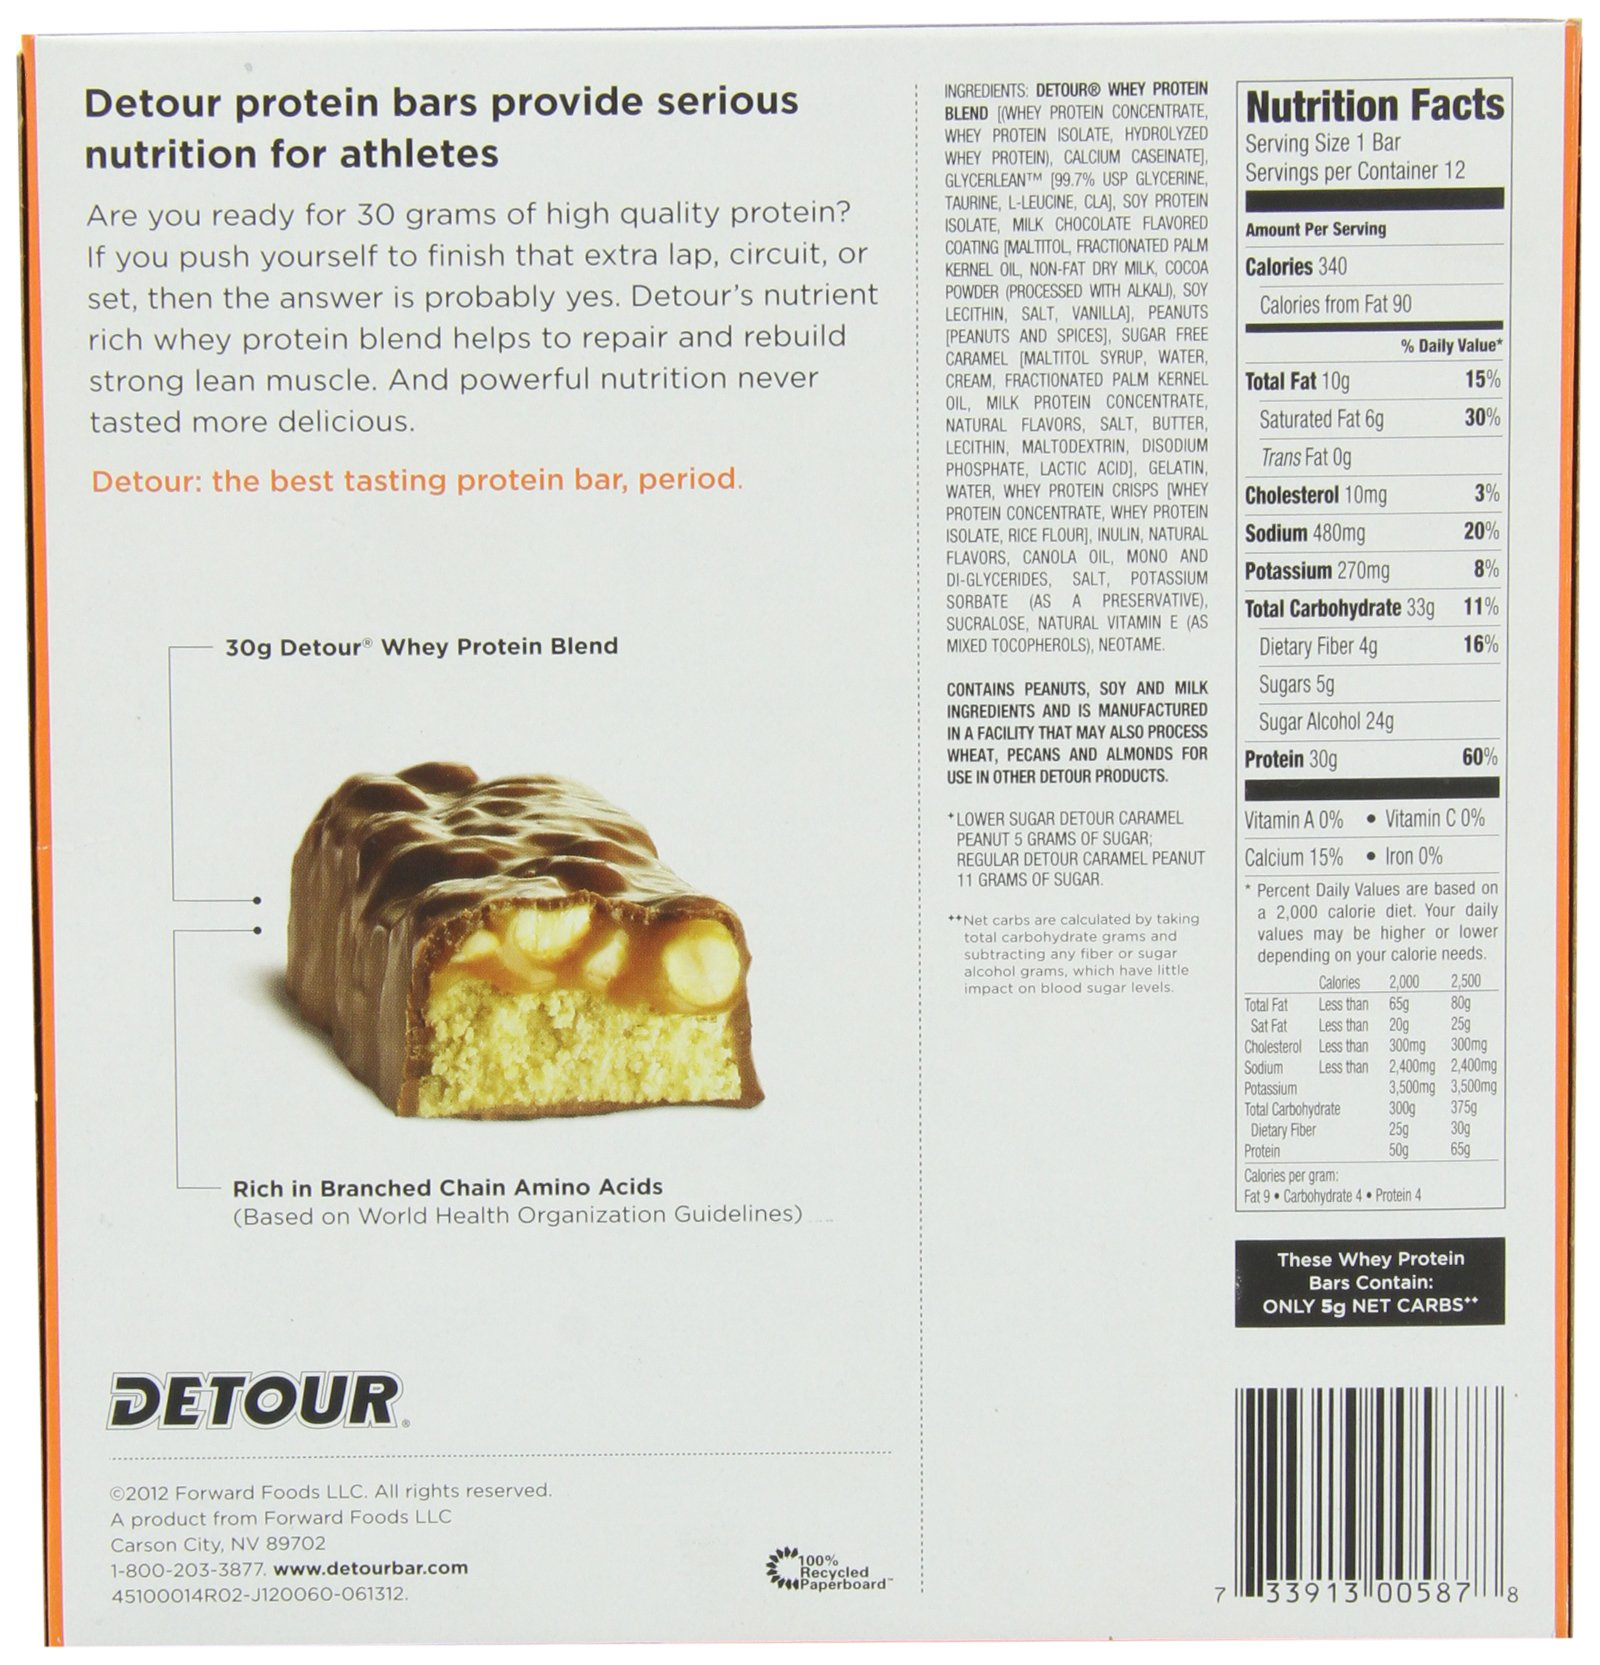 Detour Lower Sugar Whey Protein Bar, Caramel Peanut, 3 Ounce (Pack of 12) by Detour